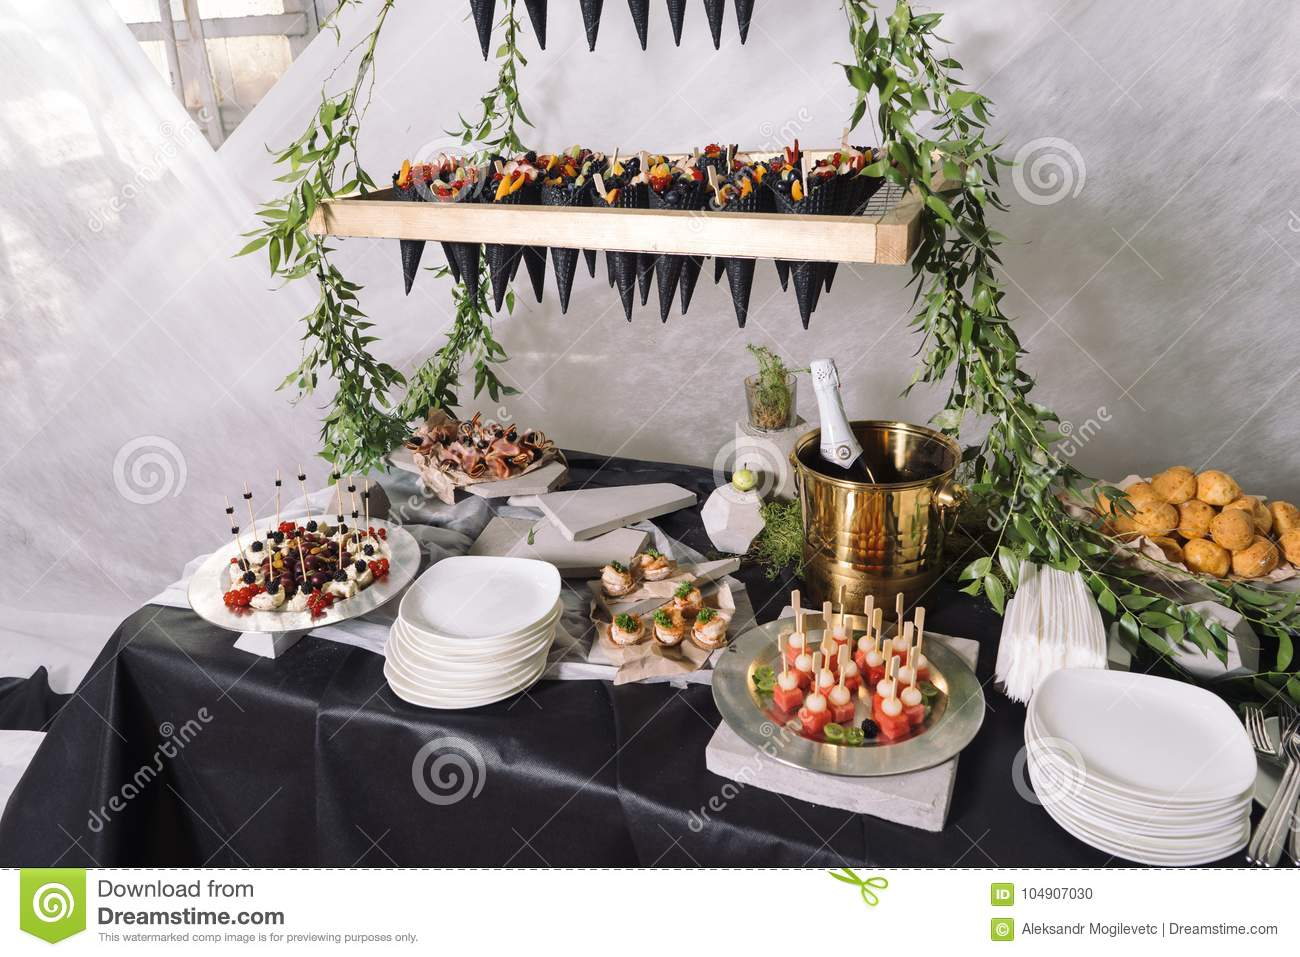 Catering A Wedding Table With Champagne Fruits Snacks Stock